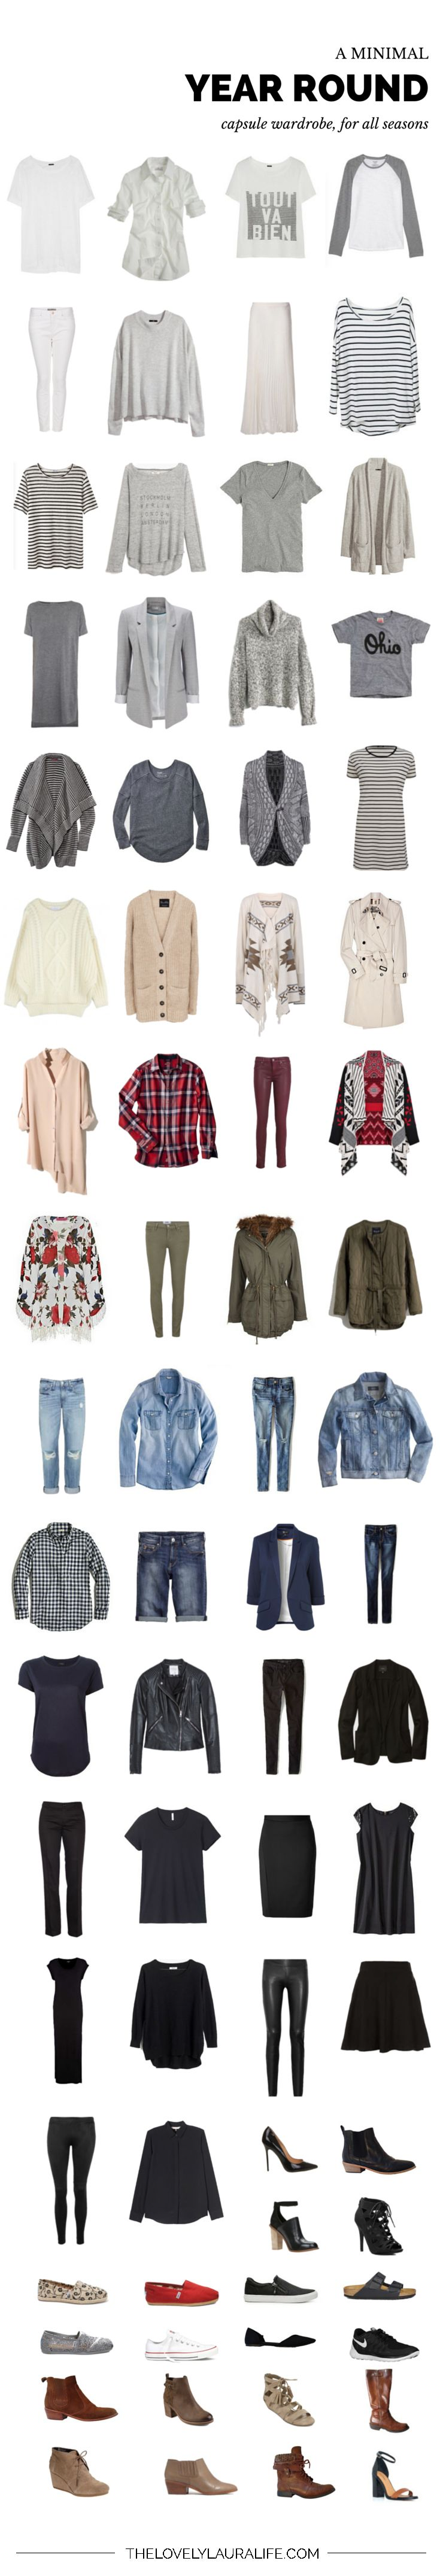 One of the best examples of a capsule wardrobe that I've seen!